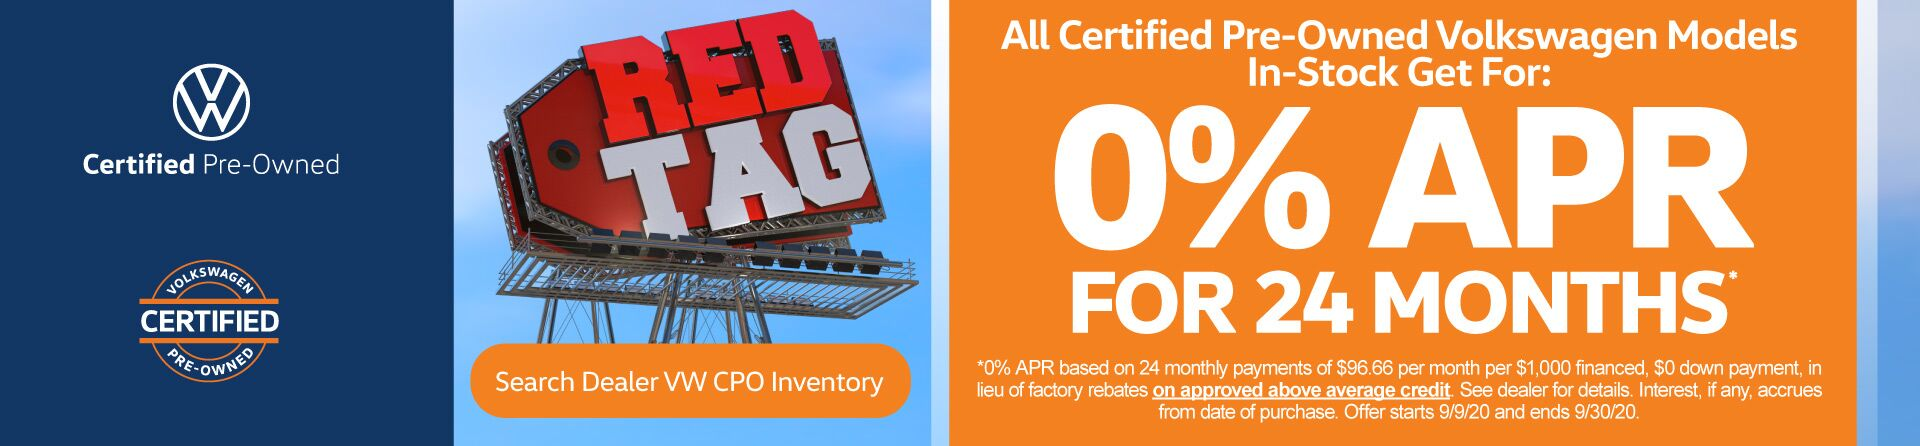 All Certified Pre-Owned Volkswagen Models 0% APR for 24mos.*